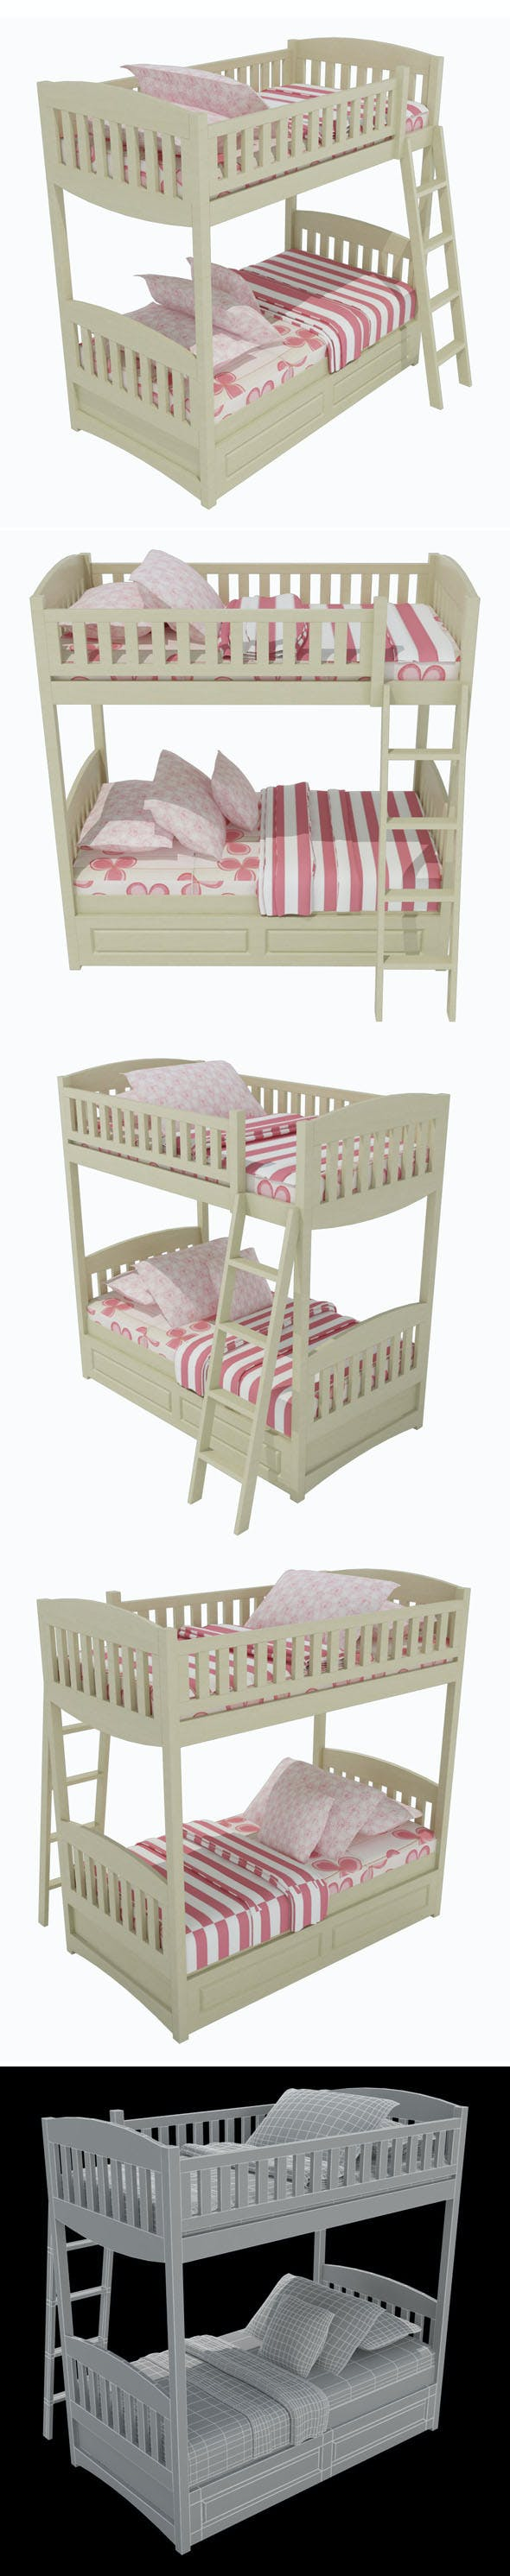 Child Bed_4 - 3DOcean Item for Sale